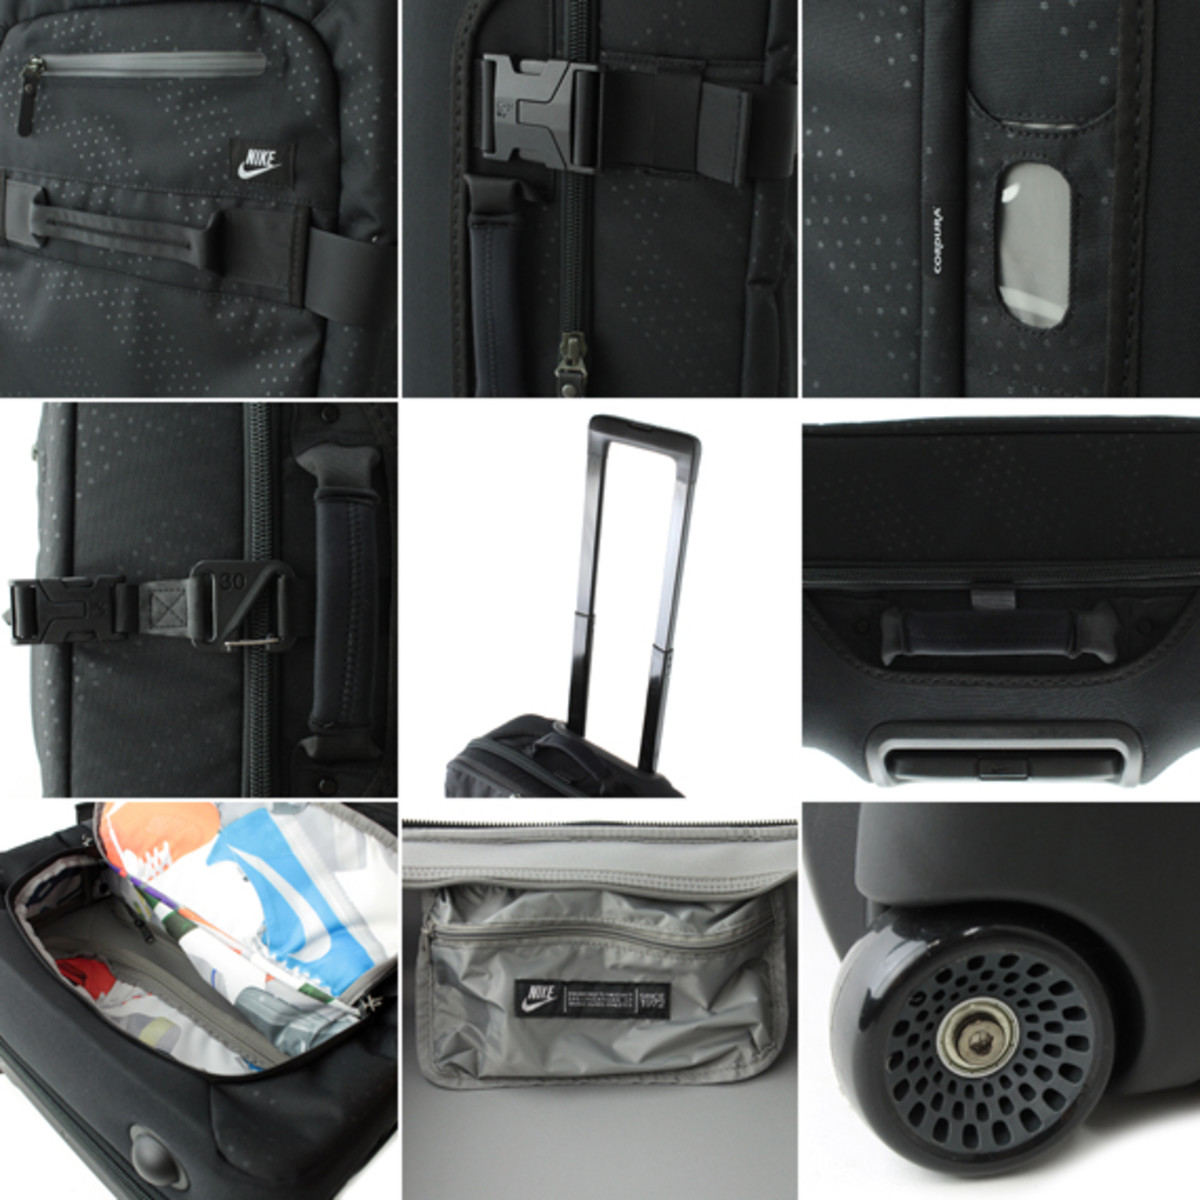 nike-fiftyone49-luggage-collection-05